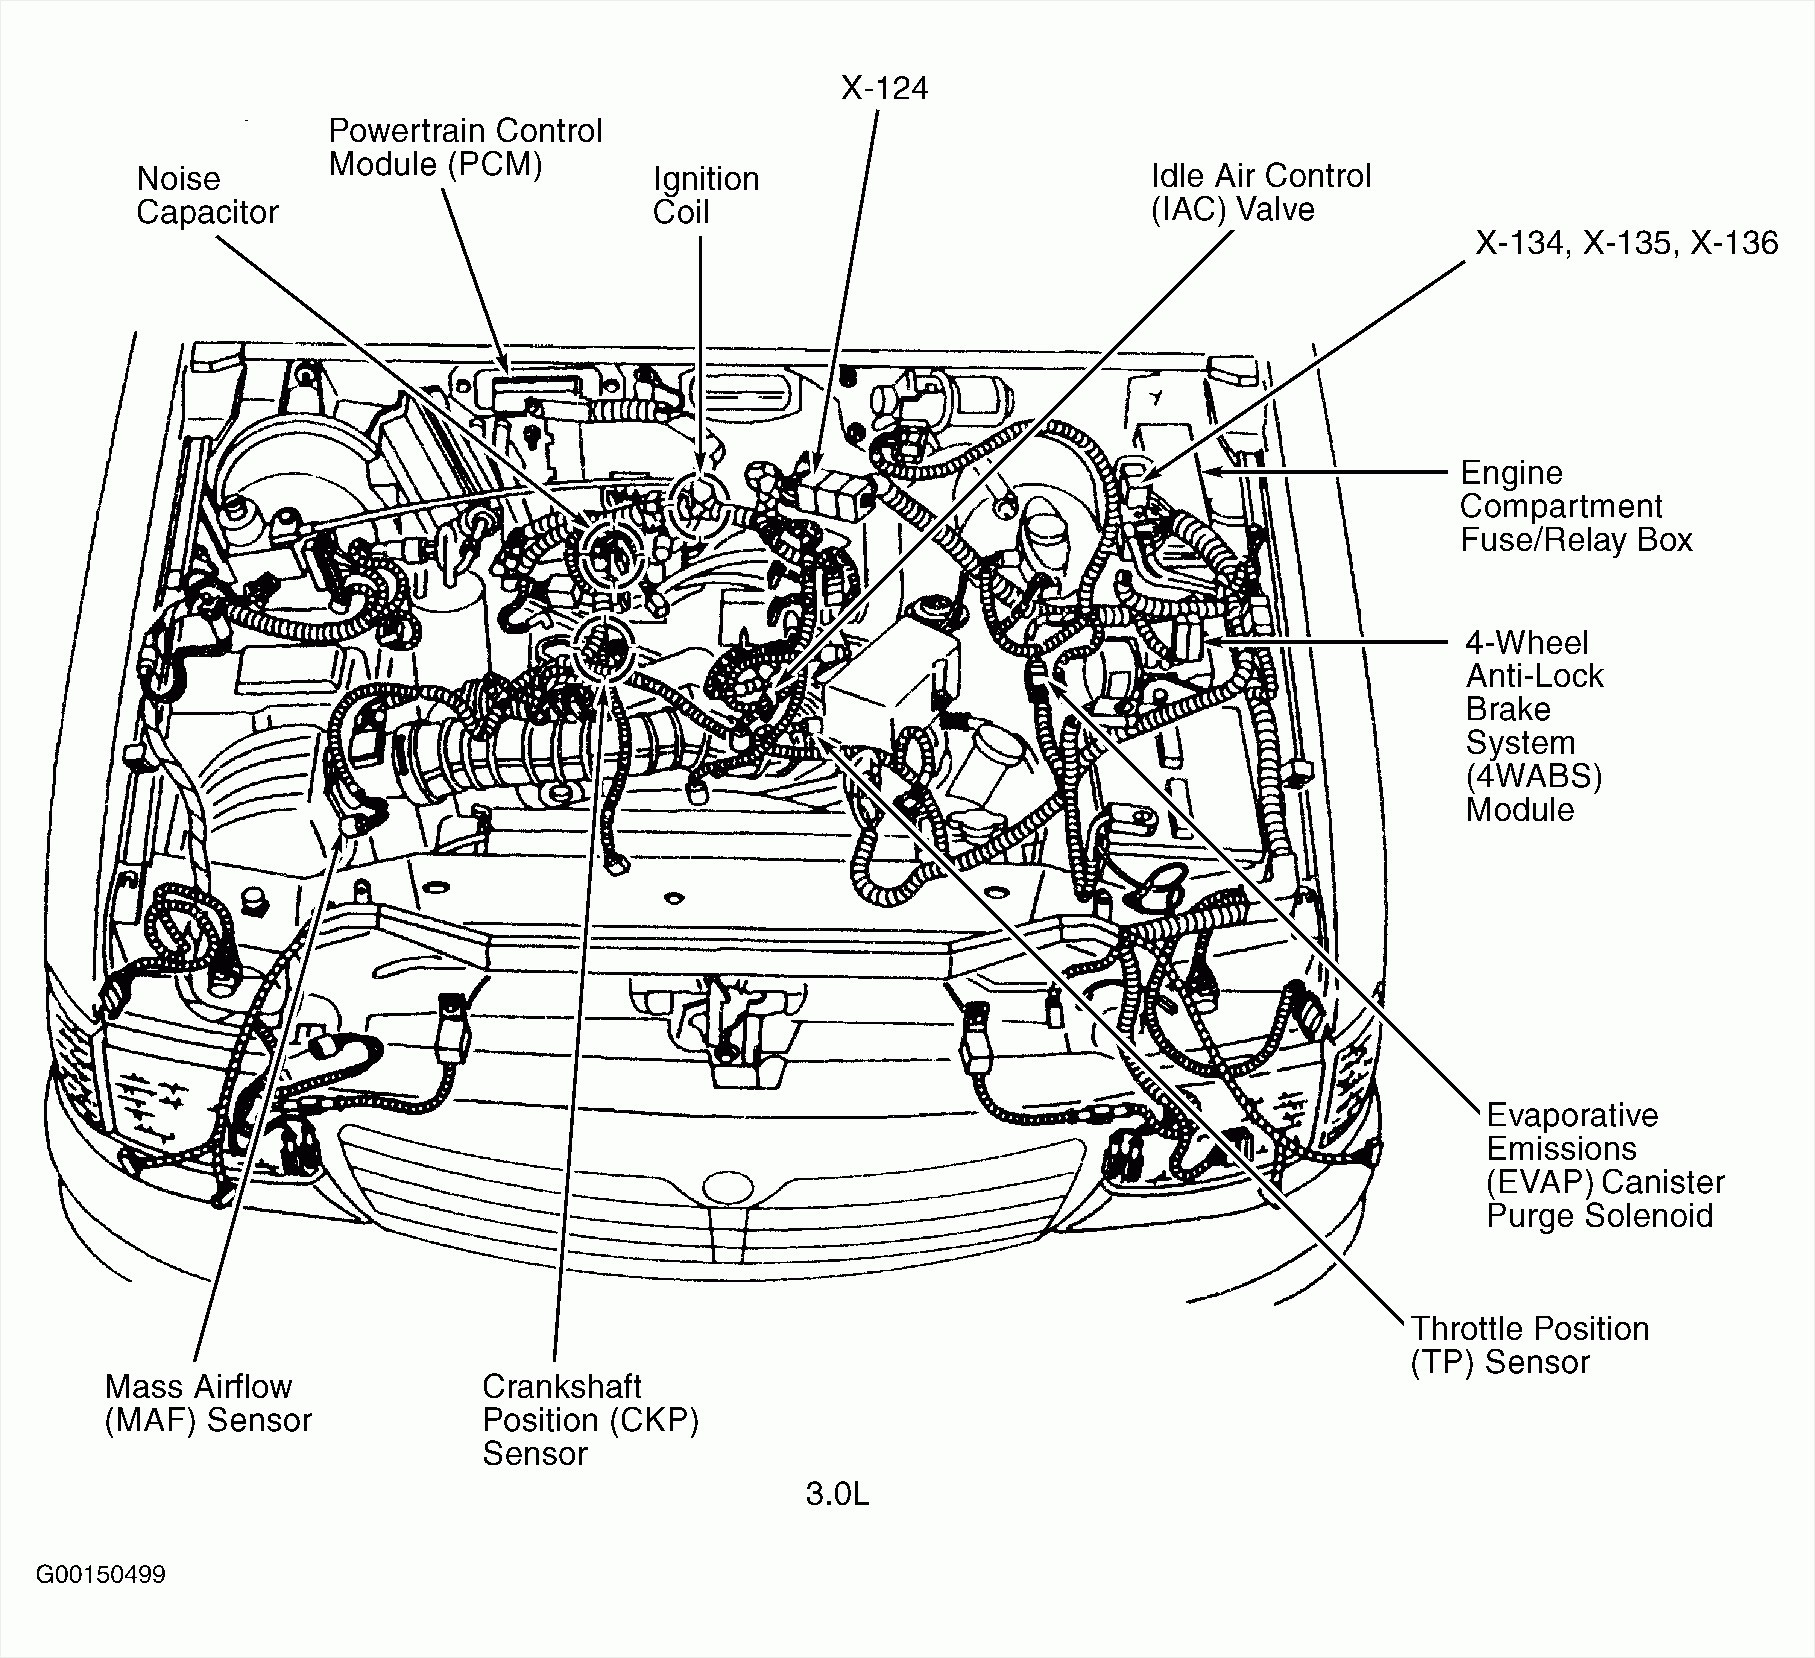 2001 Ford Explorer Sport 4 0 Engine Diagram - Unlimited ...  Ford Explorer Engine Diagram on 97 chrysler cirrus engine diagram, ford 4.0 sohc engine diagram, 1997 ford 5.8 engine diagram, 97 dodge ram 1500 engine diagram, 1997 ford explorer brake diagram, 2007 sport trac transmission line diagram, 97 jeep grand cherokee engine diagram, 97 buick park avenue engine diagram, 97 pontiac grand am engine diagram, 2008 ford expedition heater hose diagram, 1997 ford 4.0 engine diagram, 97 ford explorer lose power, 97 ford explorer radio wiring, 97 ford wiring diagram, 2005 ford explorer belt diagram, ford explorer motor diagram, 1996 ford 3.8 engine diagram, 97 ford explorer speedometer, ford 7.3 powerstroke diesel engine diagram, 97 geo prizm engine diagram,